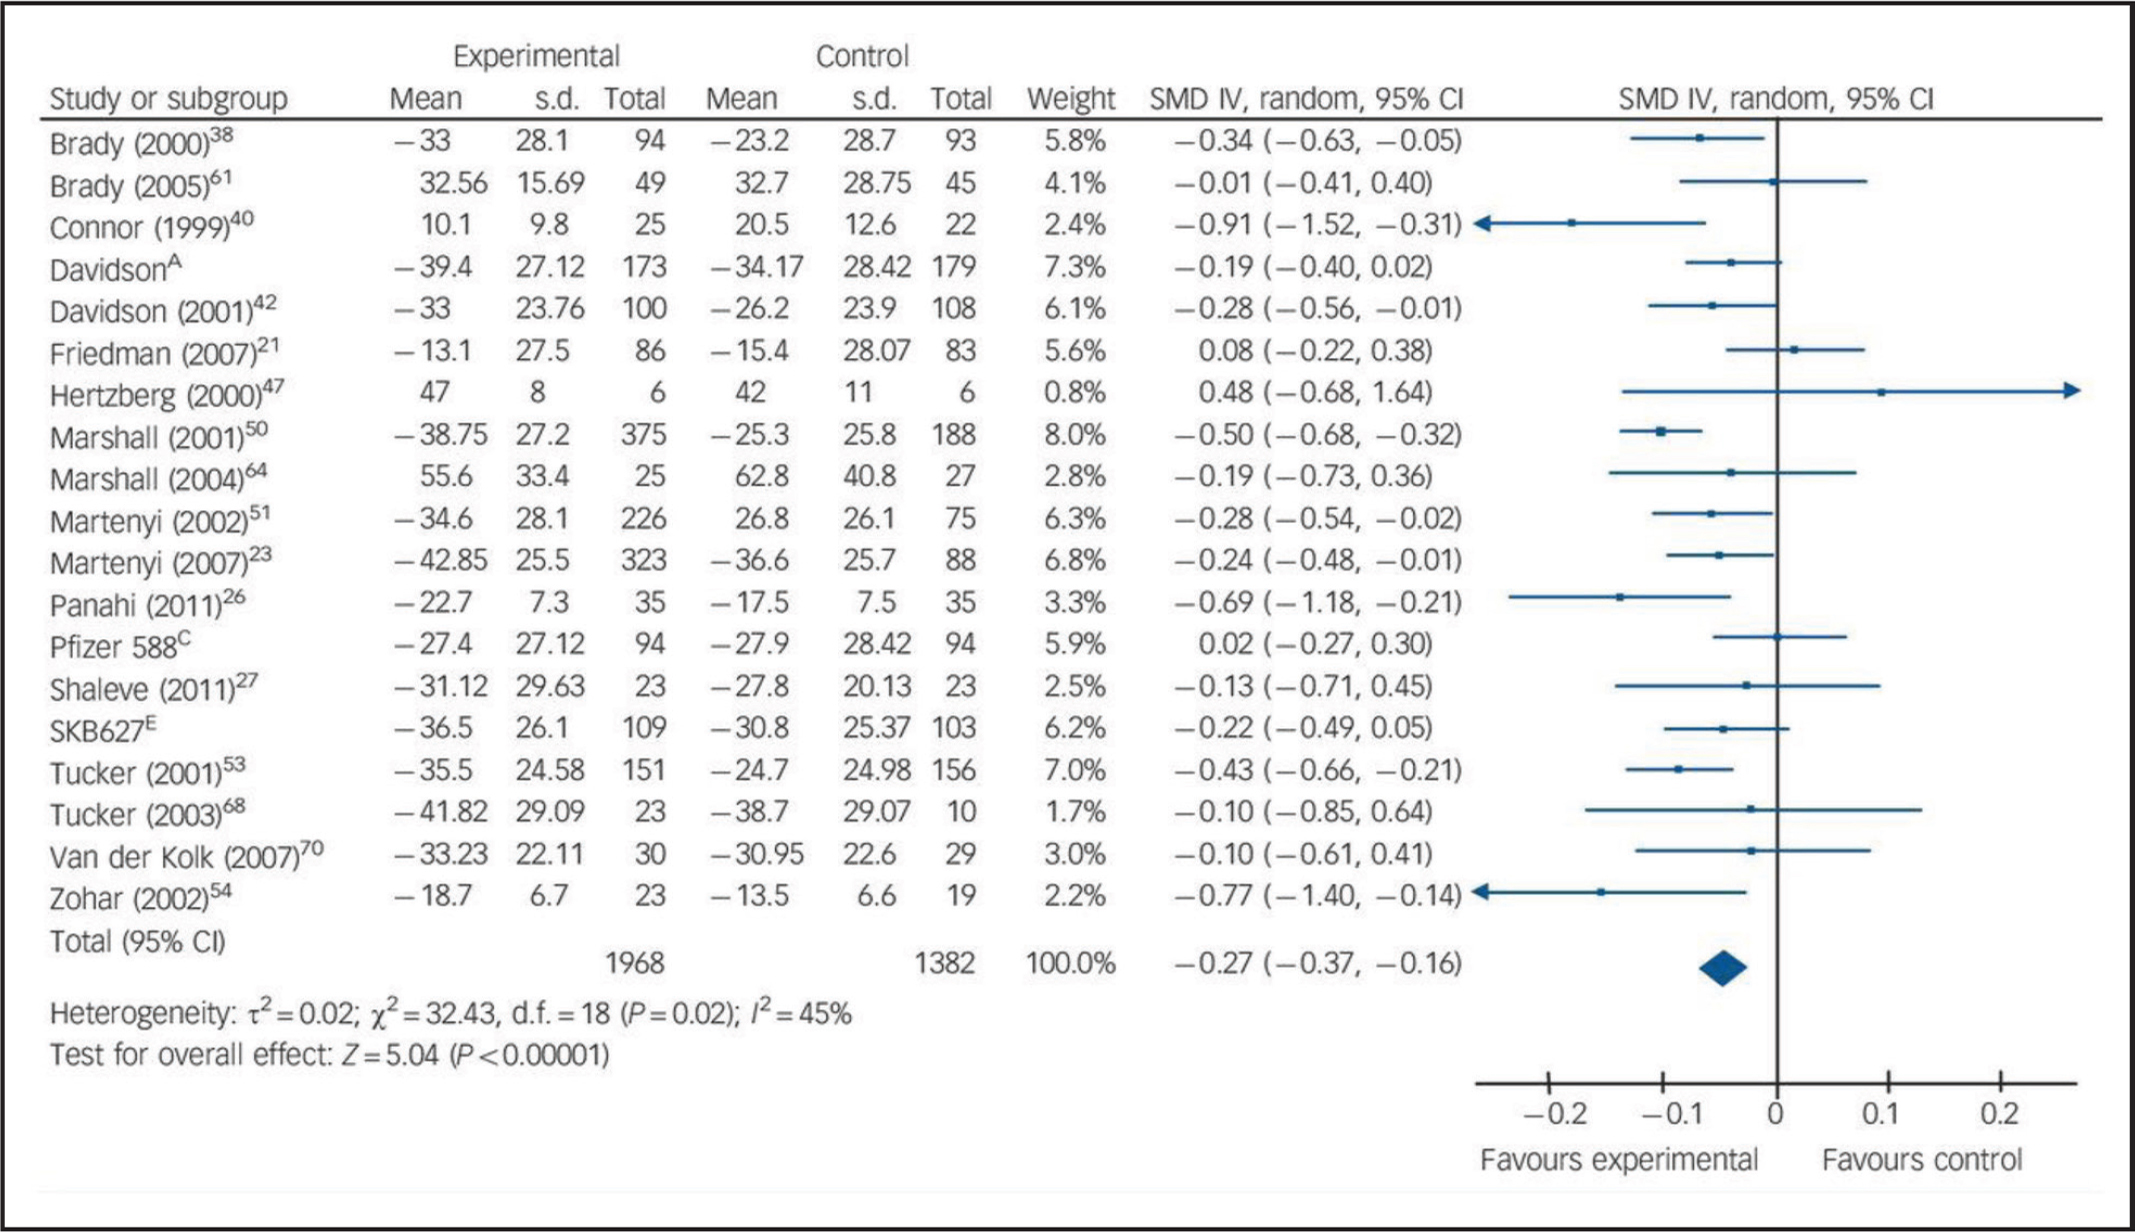 Meta-analysis of selective serotonin reuptake inhibitors versus placebo for the treatment of posttraumatic stress disorder. Reprinted from Hoskins et al.46 with permission from The Royal College of Psychiatrists.